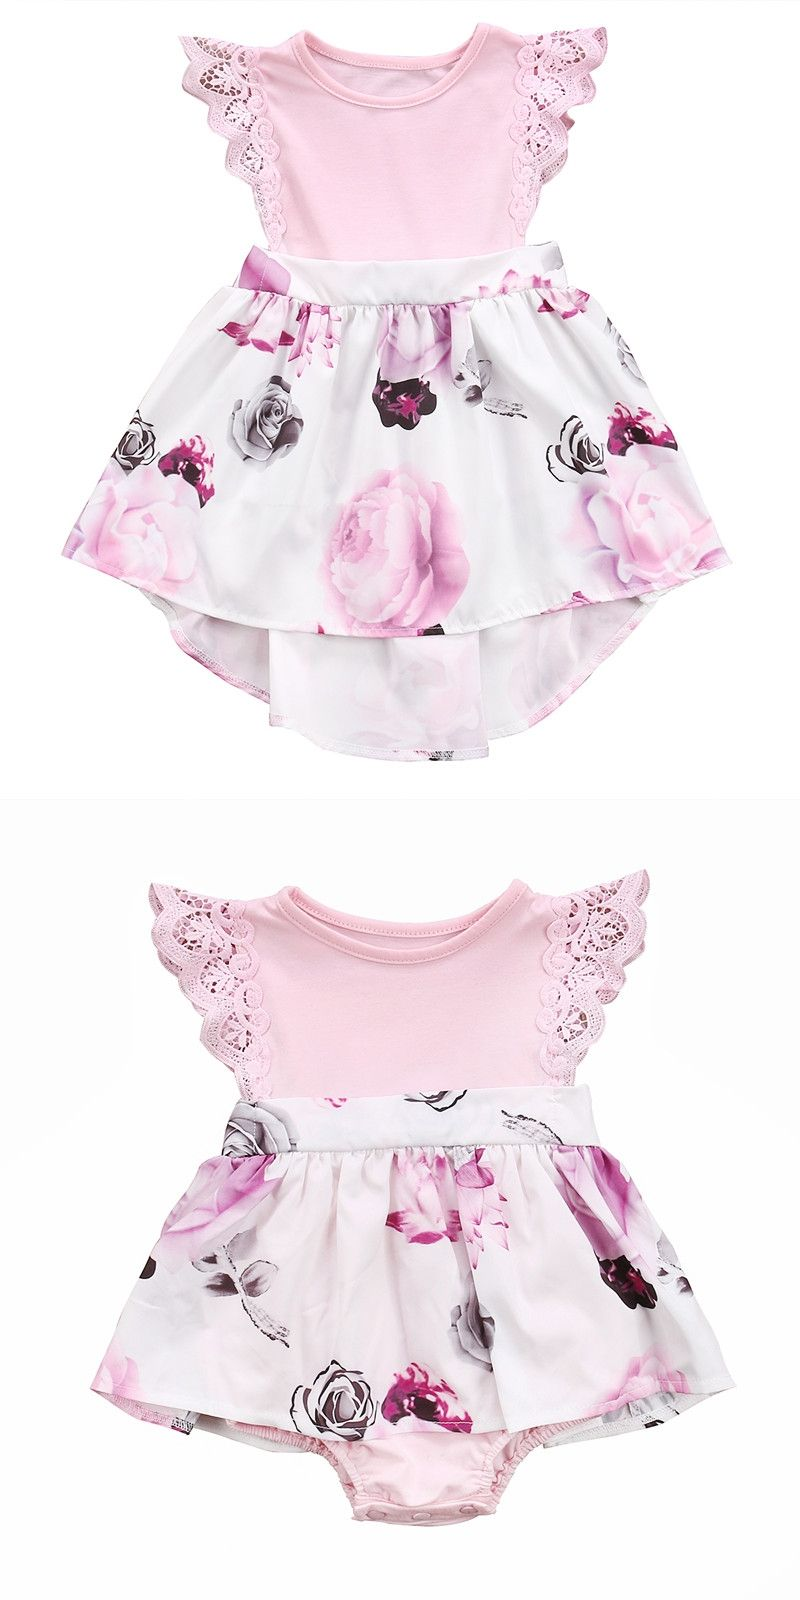 4f6467171b8 Family Sister Floral Matching Clothing Newborn Baby girls Kids lace Summer  Floral Romper  Dress clothes outfits